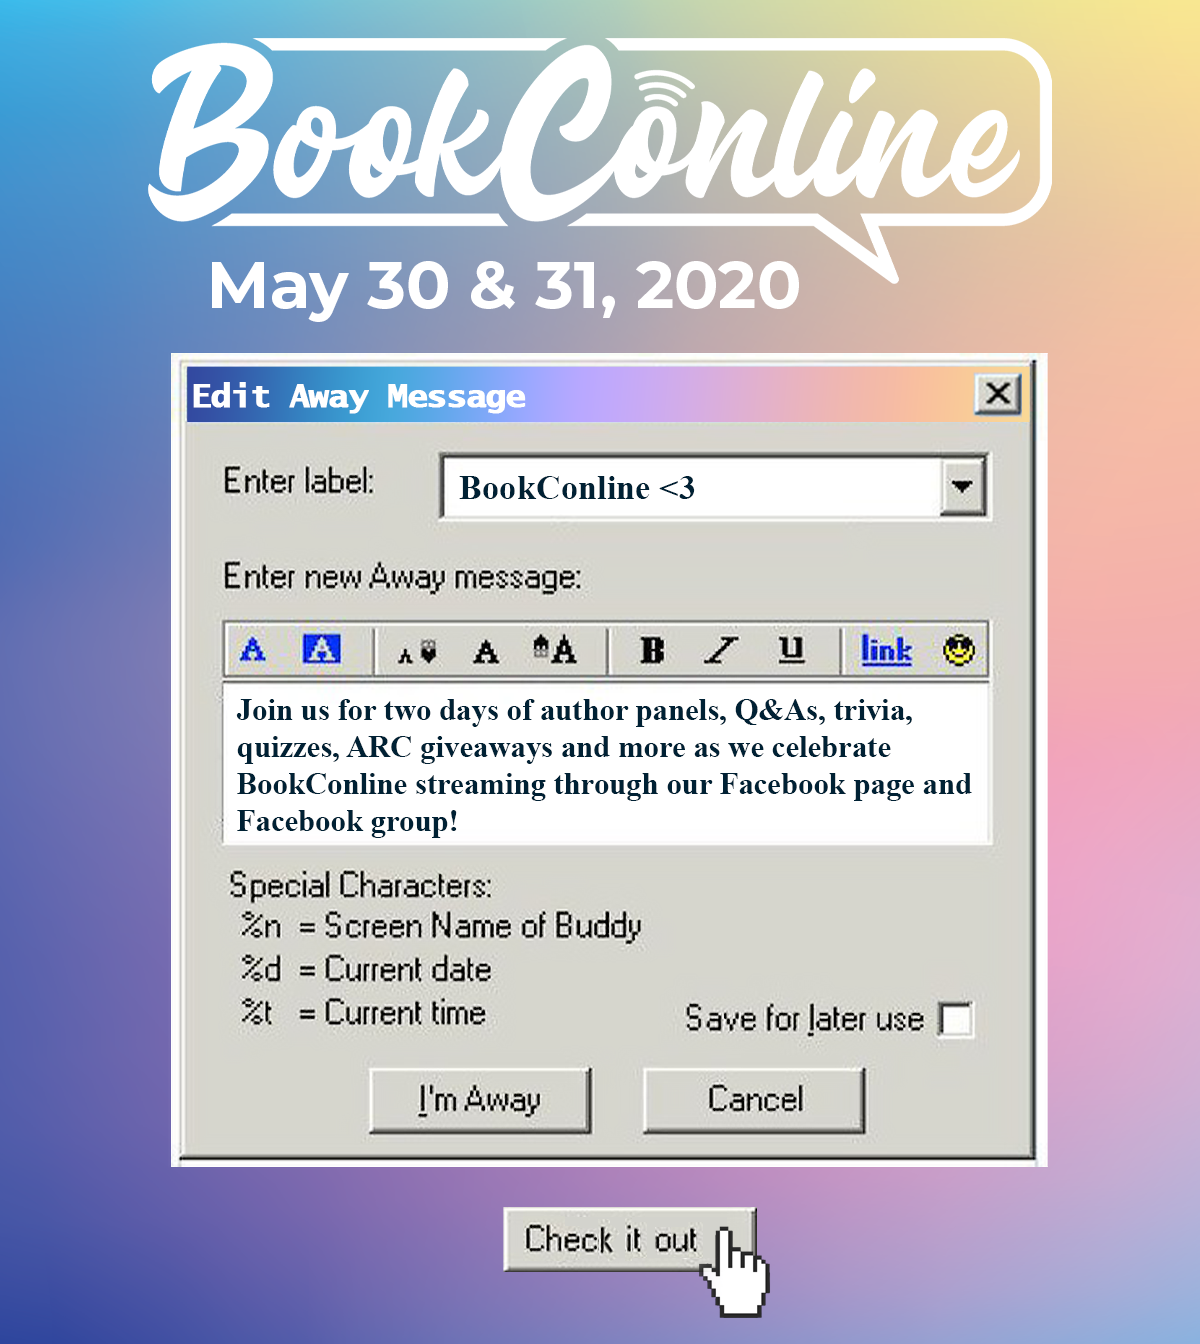 BookConline My 30 & 31 Join us for two days of author panels, Q&As, trivia, quizzes, ARC giveaways and more as we celebrate BookConline streaming through our Facebook page and Facebook group!